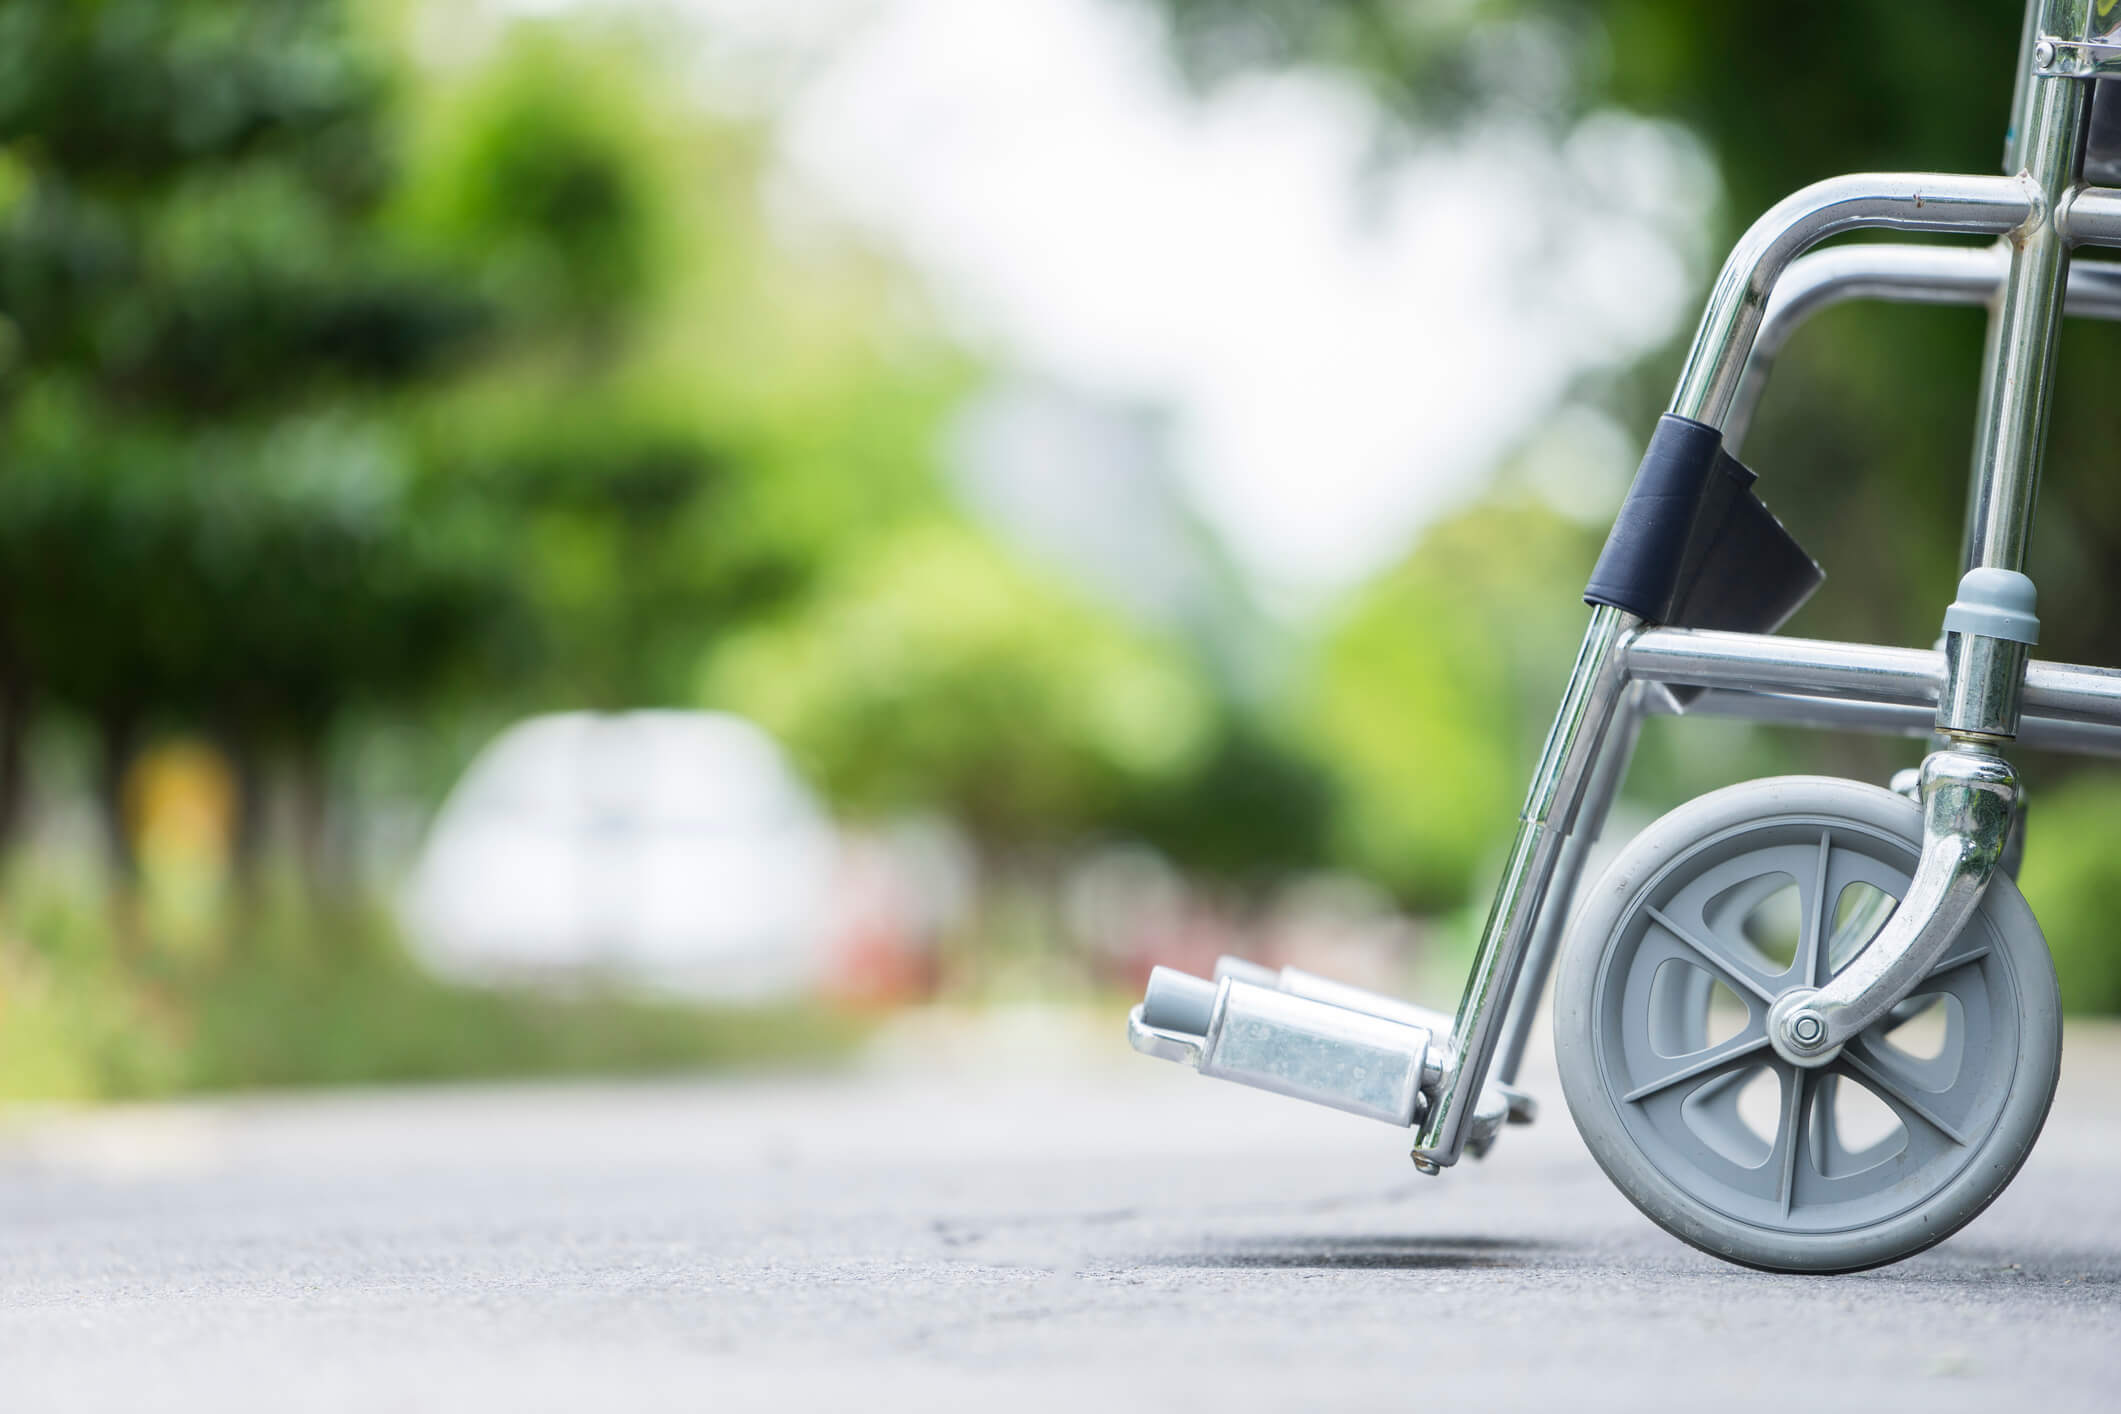 can-i-take-out-a-loan-if-i-am-on-disability-benefits